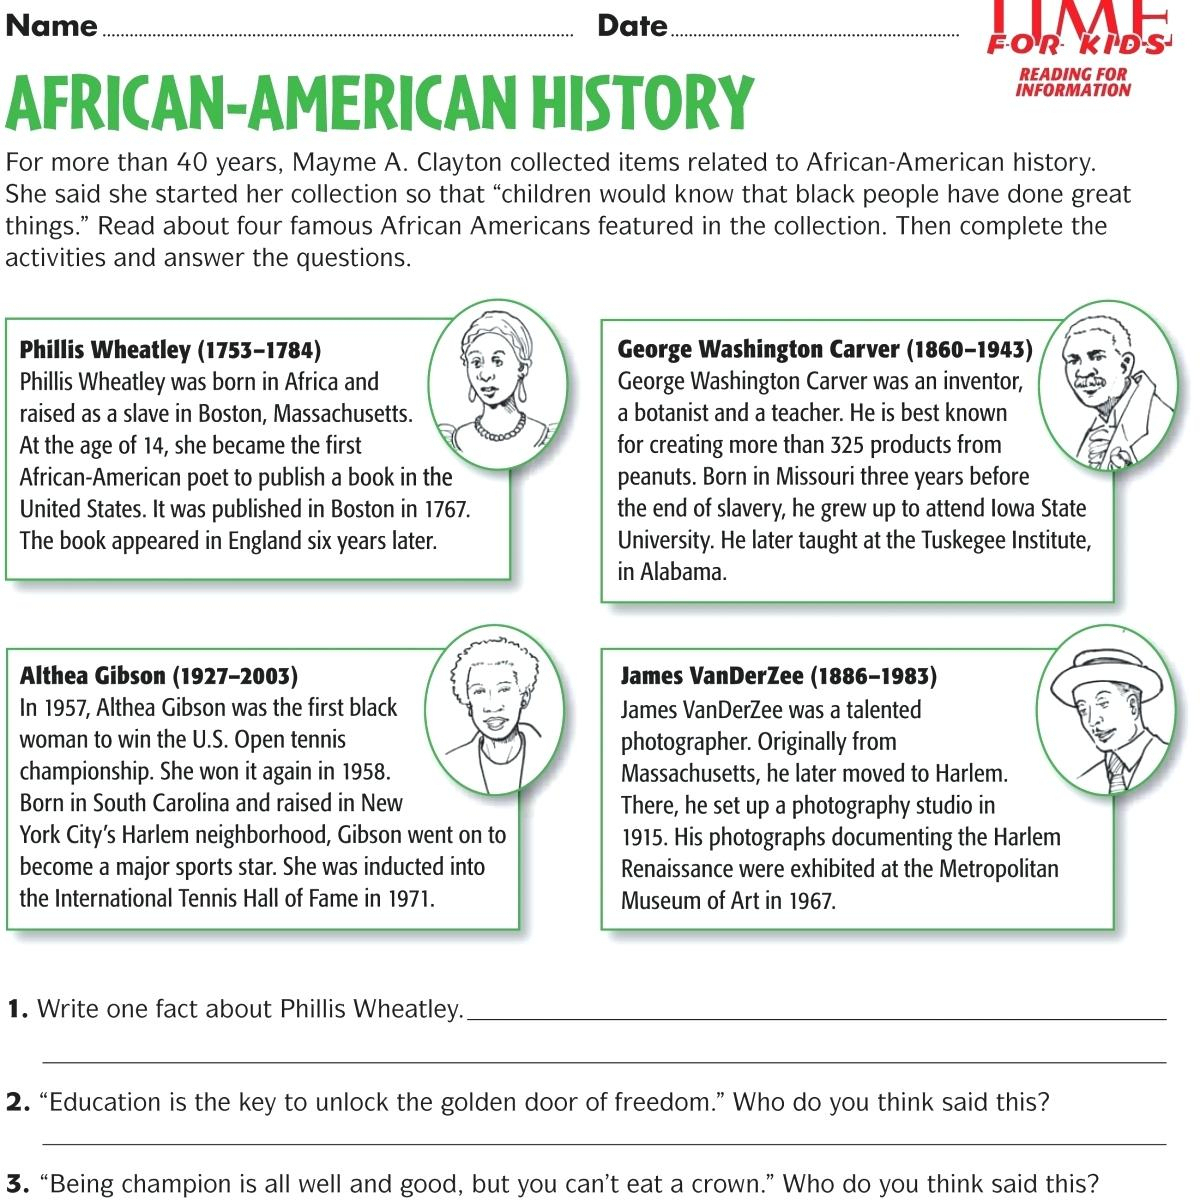 3Rd Grade Social Studies Worksheets For Download Free - Math - Free | Grade 3 Social Studies Worksheets Printable